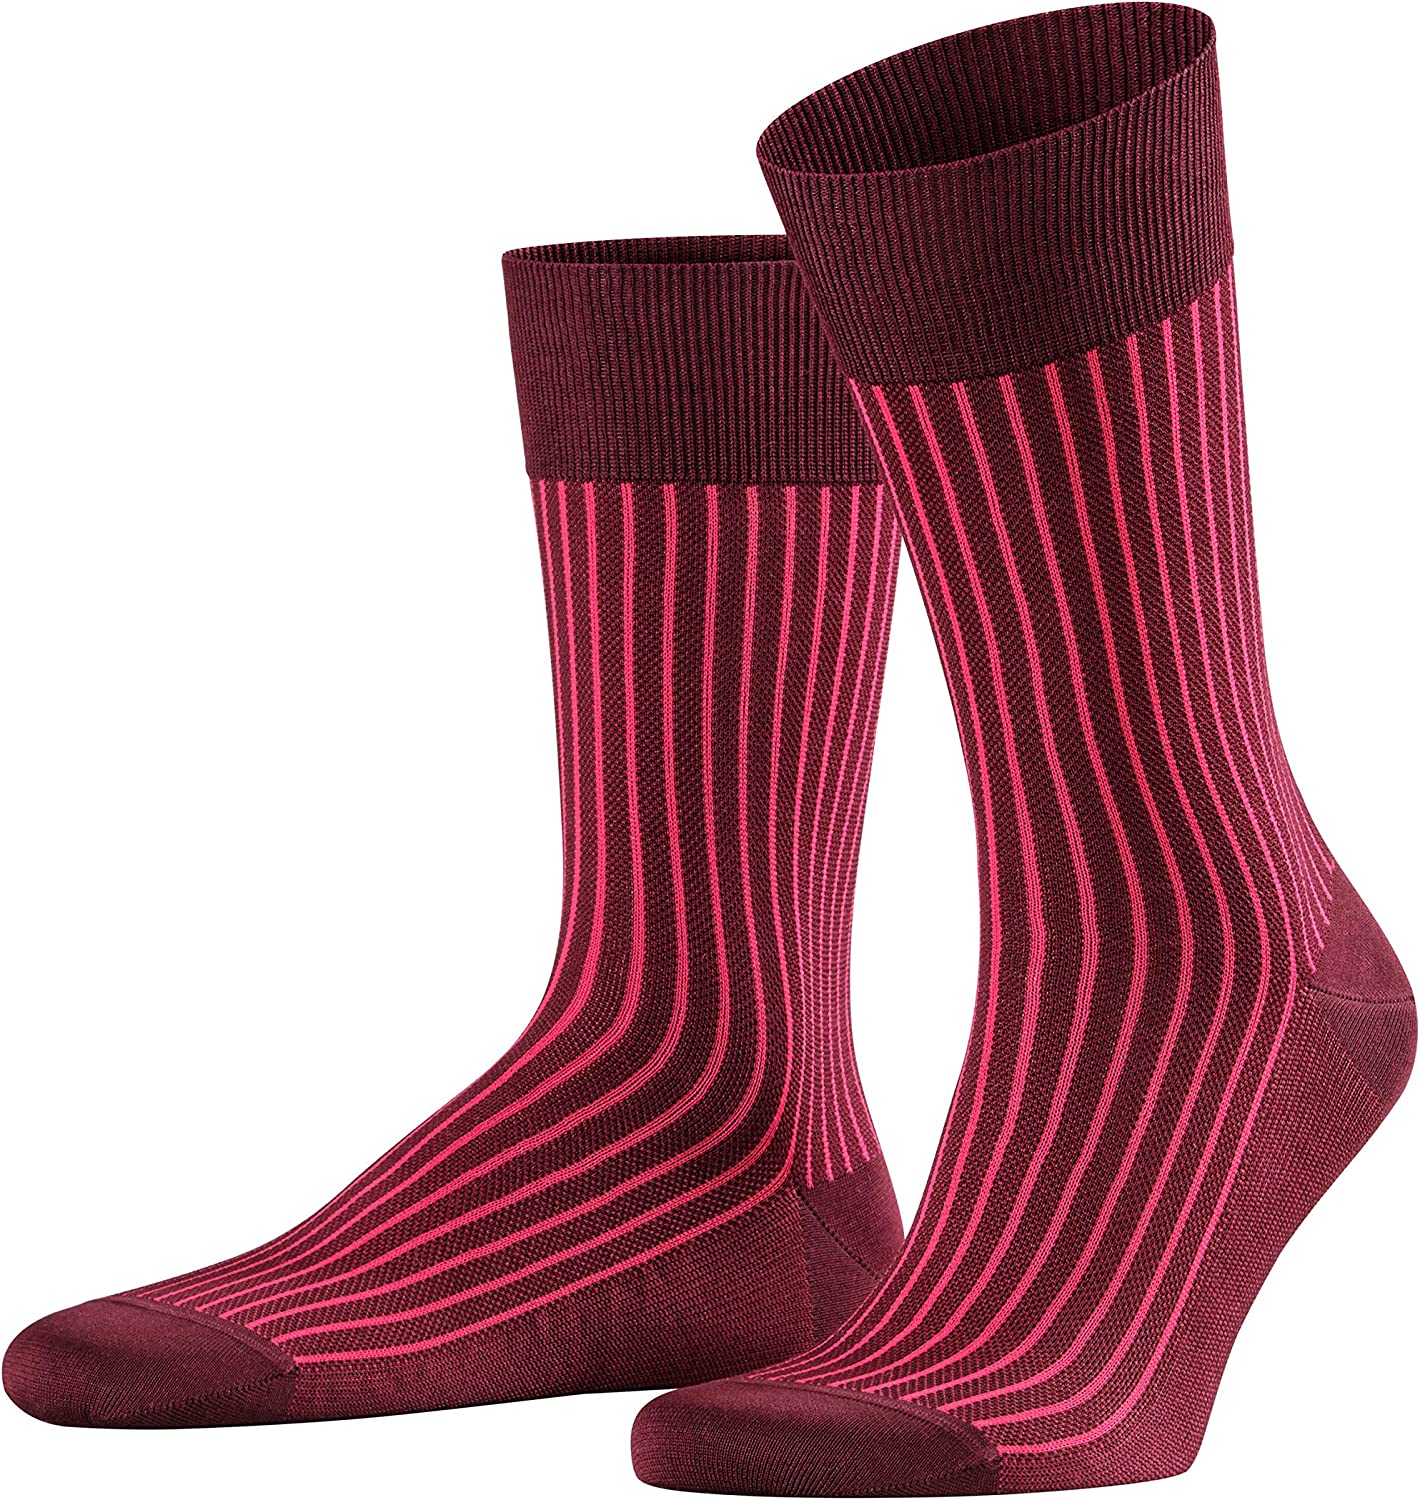 FALKE Mens Oxford Stripe Casual Sock - Cotton Rich, Multiple Colors, US sizes 6.5 to 13.5, 1 Pair